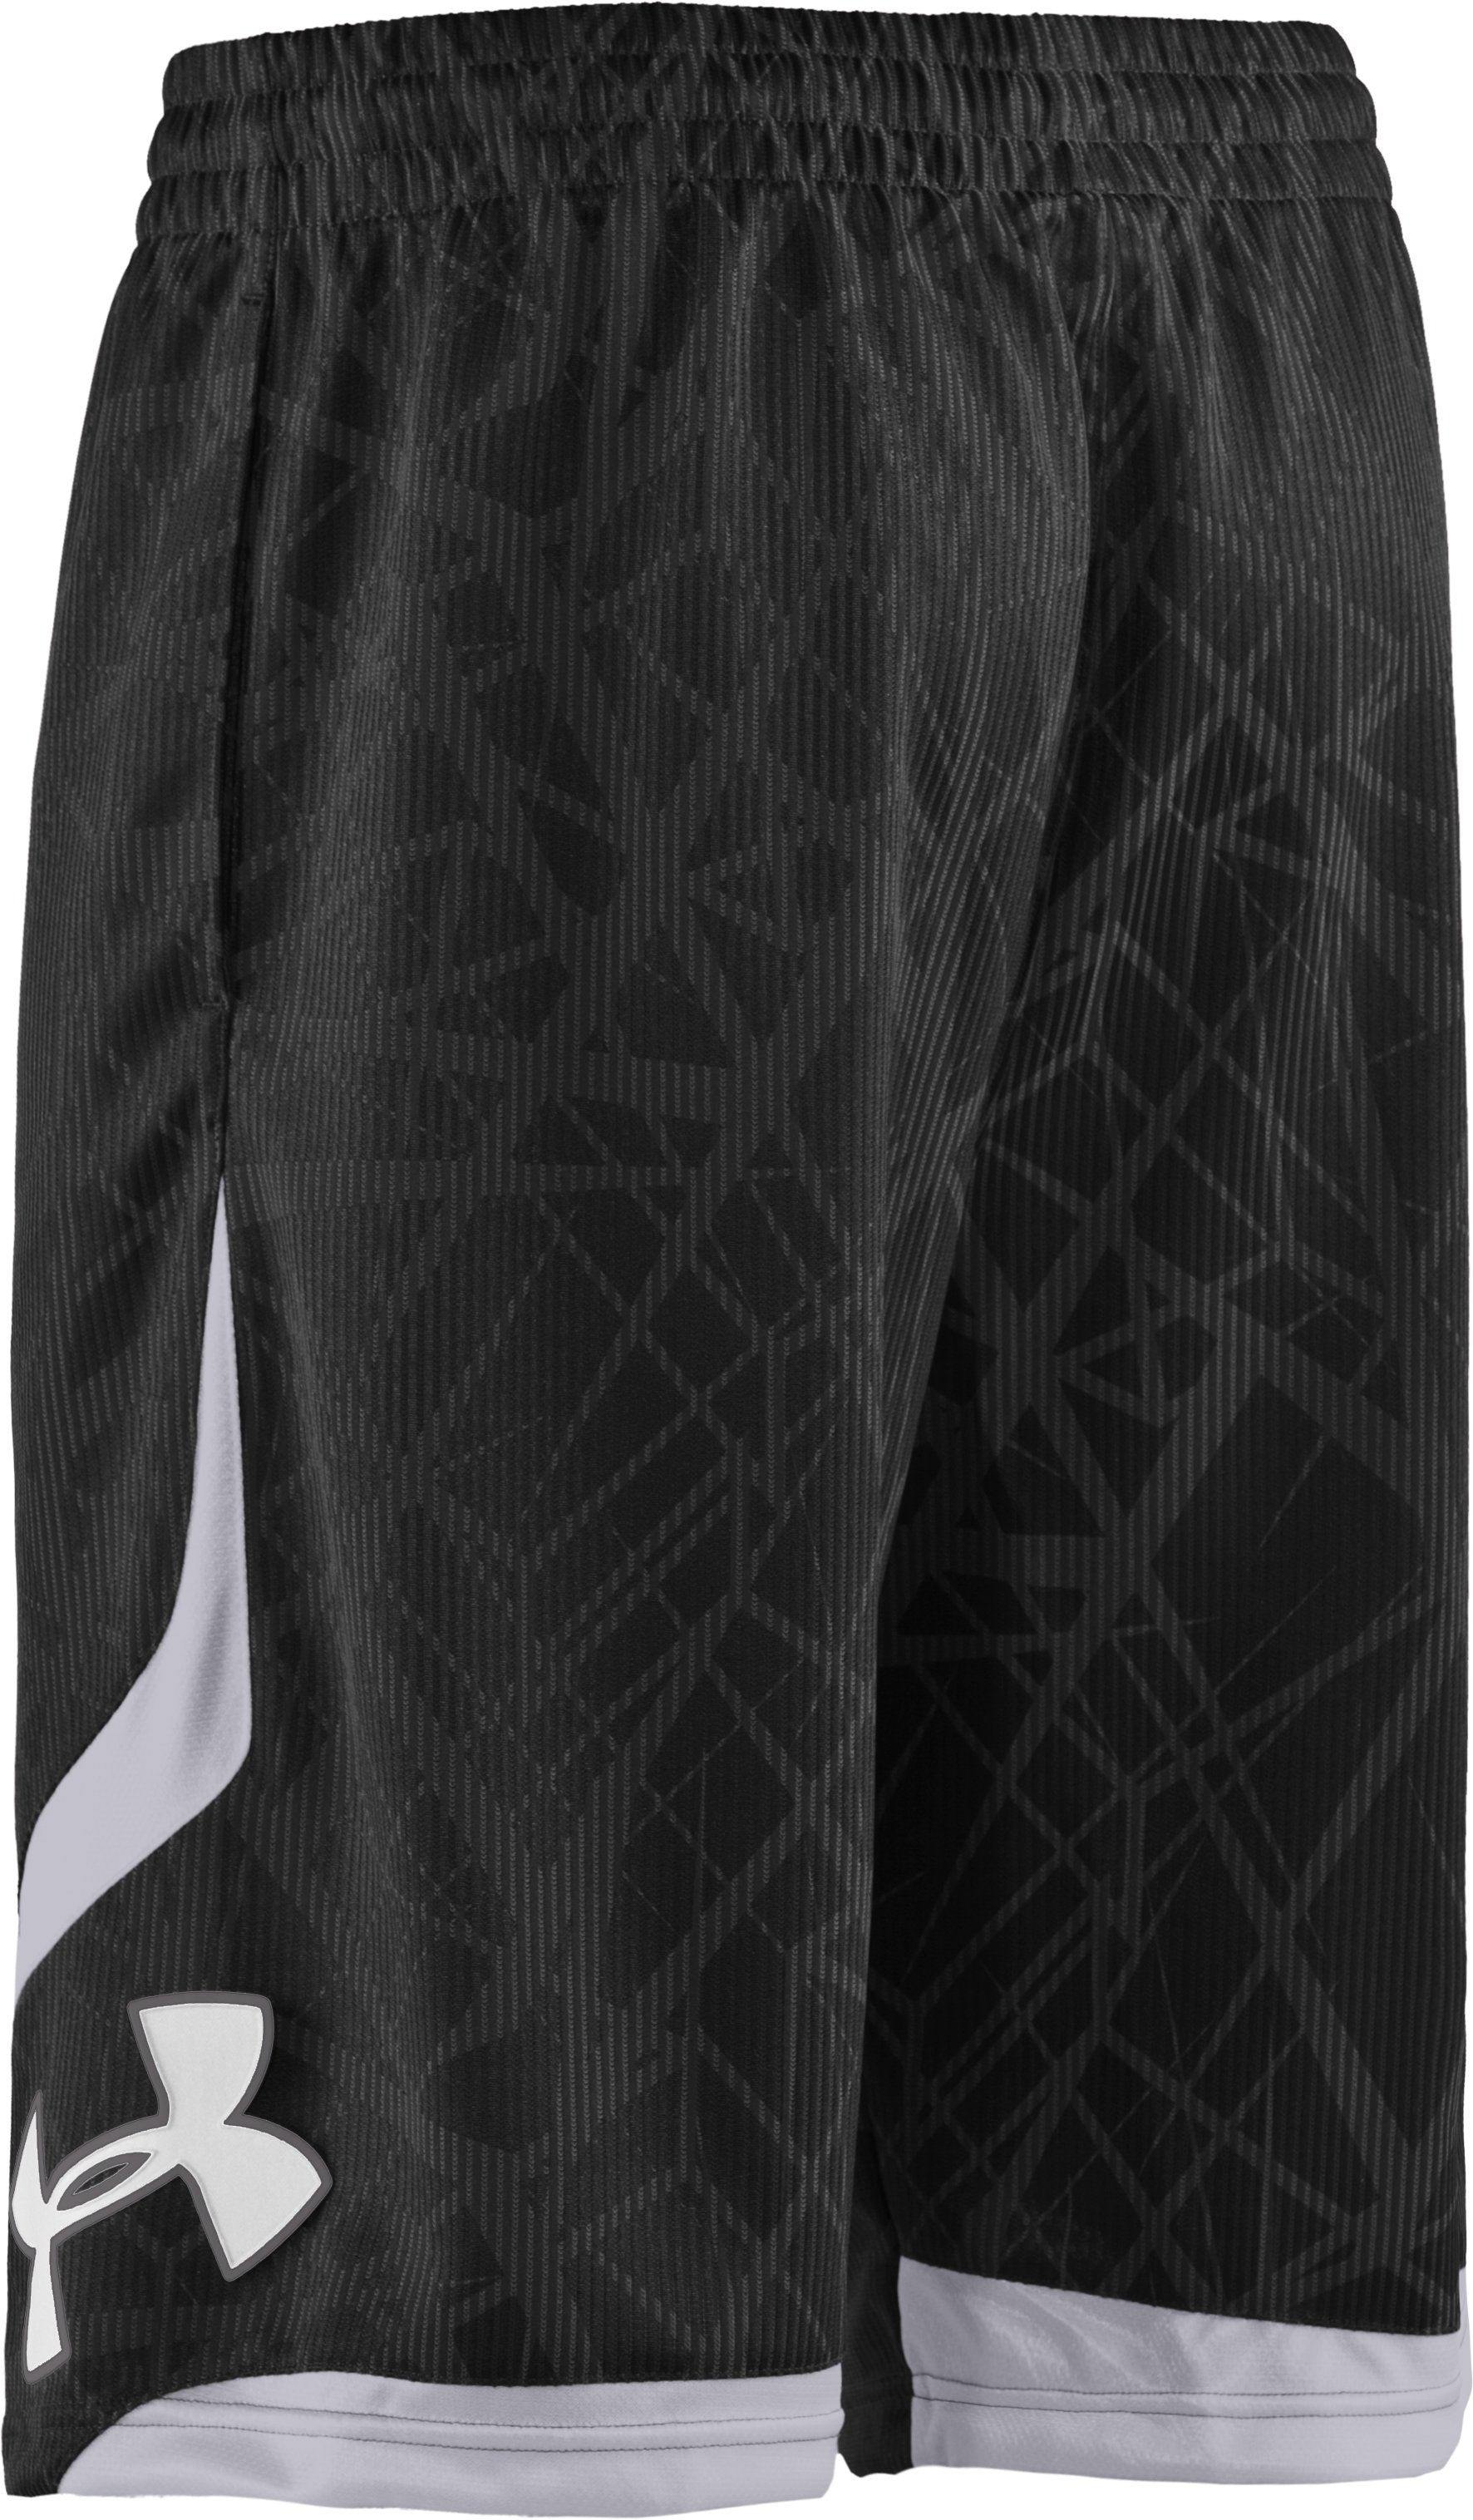 "Men's Printed UA Valkyrie 12"" Basketball Shorts, Black"